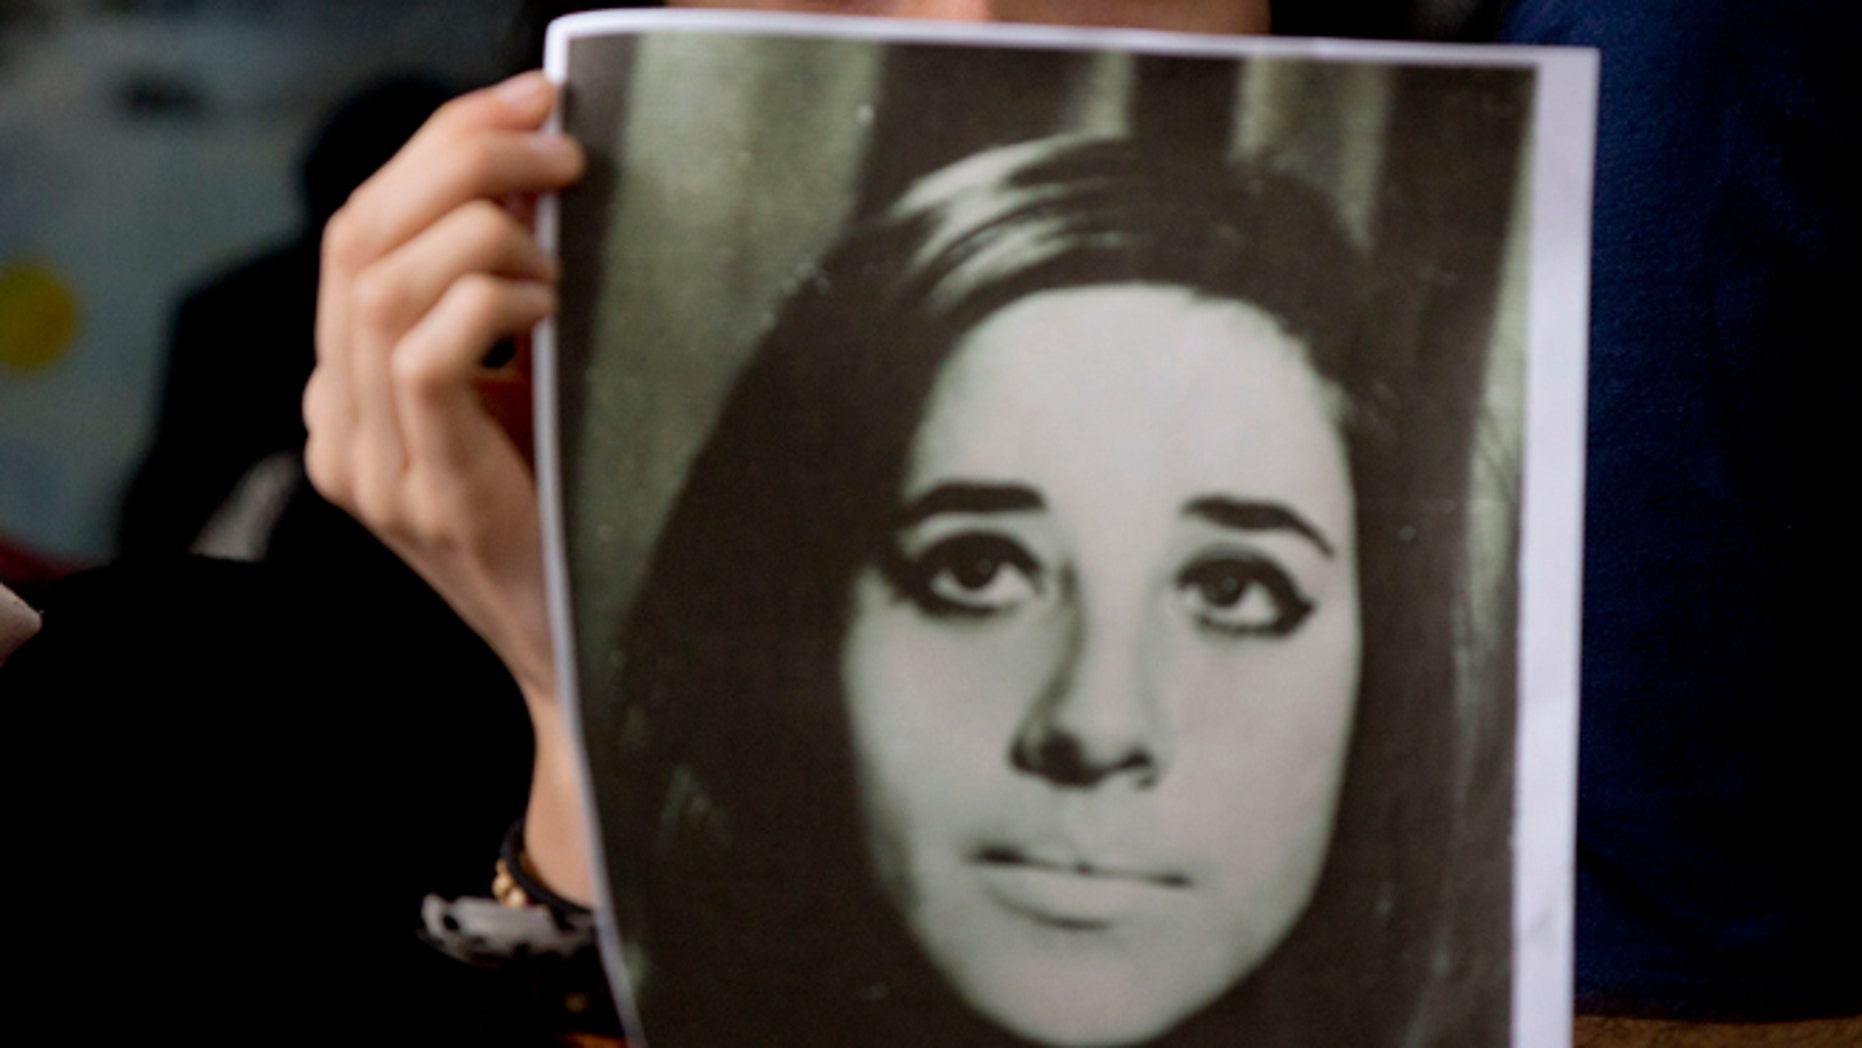 A woman holds an image of disappeared Ana Maria Lanzillotto during a press conference in Buenos Aires on Oct. 5, 2016.